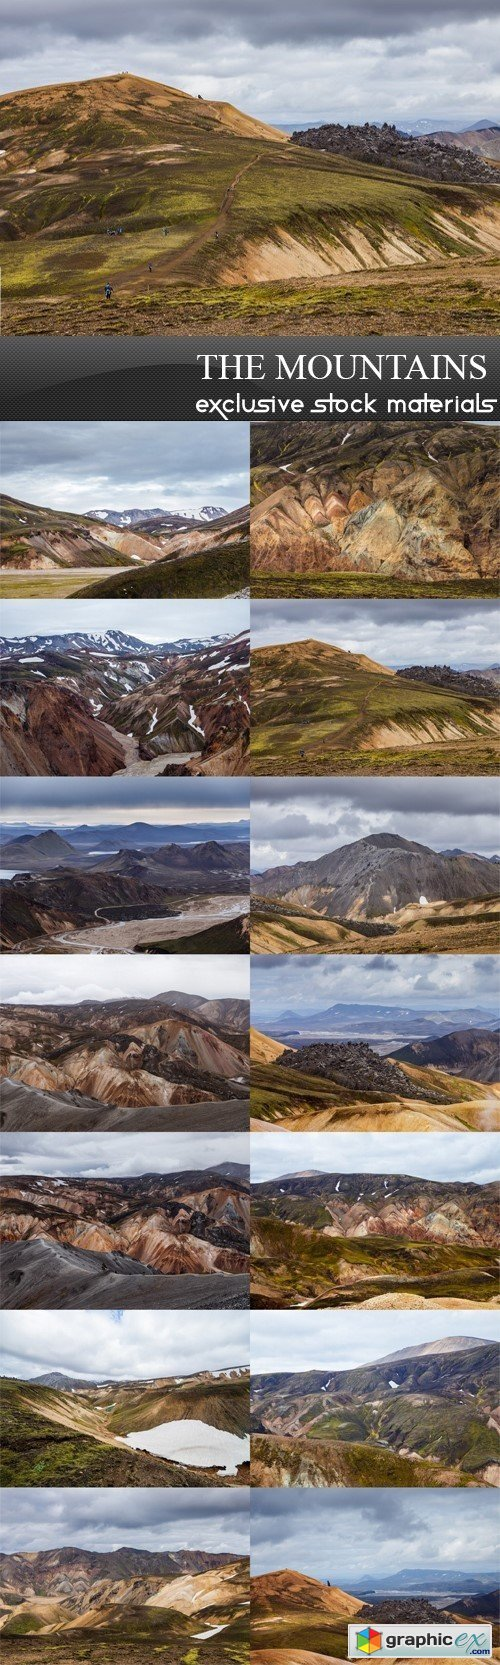 The Mountains Images - 14 UHQ JPEG